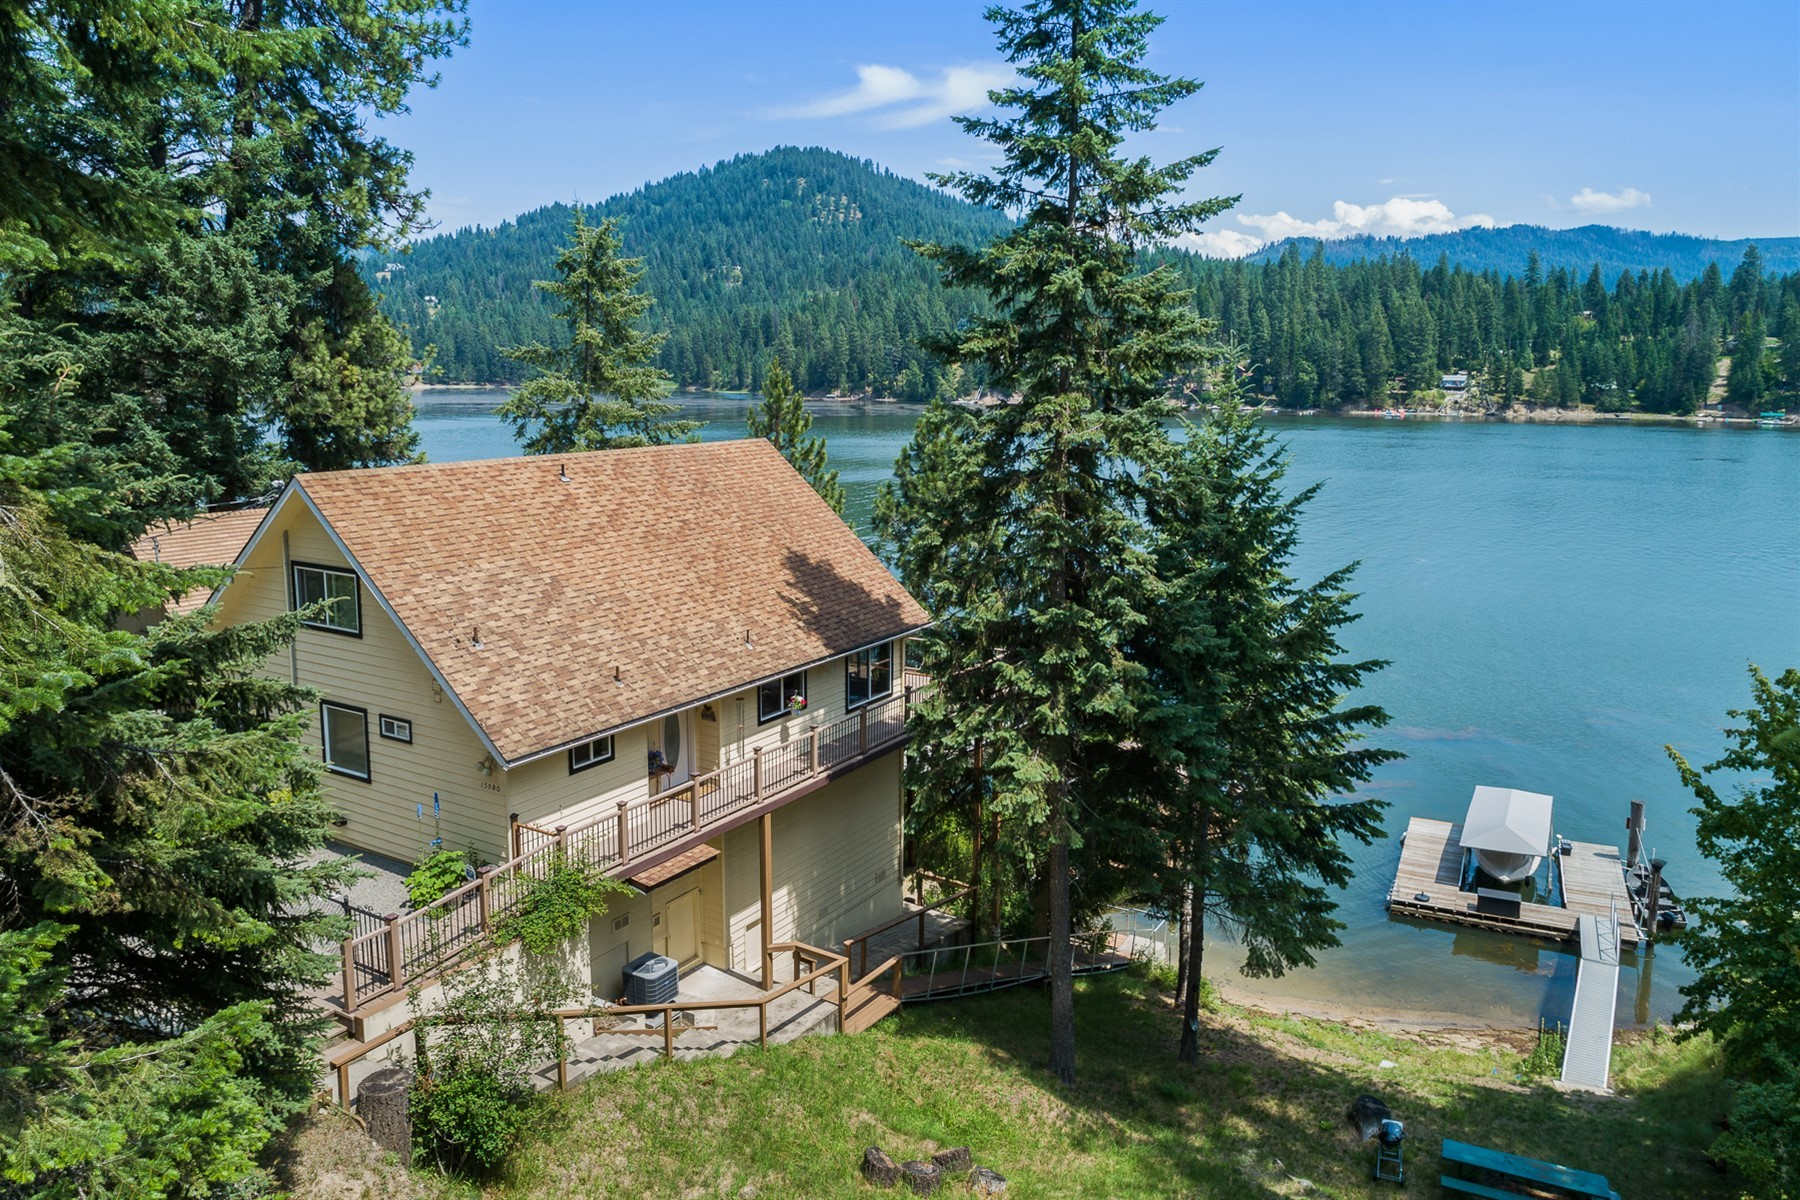 Single Family Homes for Sale at YEAR ROUND LIVING ON HAYDEN LAKE 15300 N Shenandoah Drive Hayden, Idaho 83835 United States